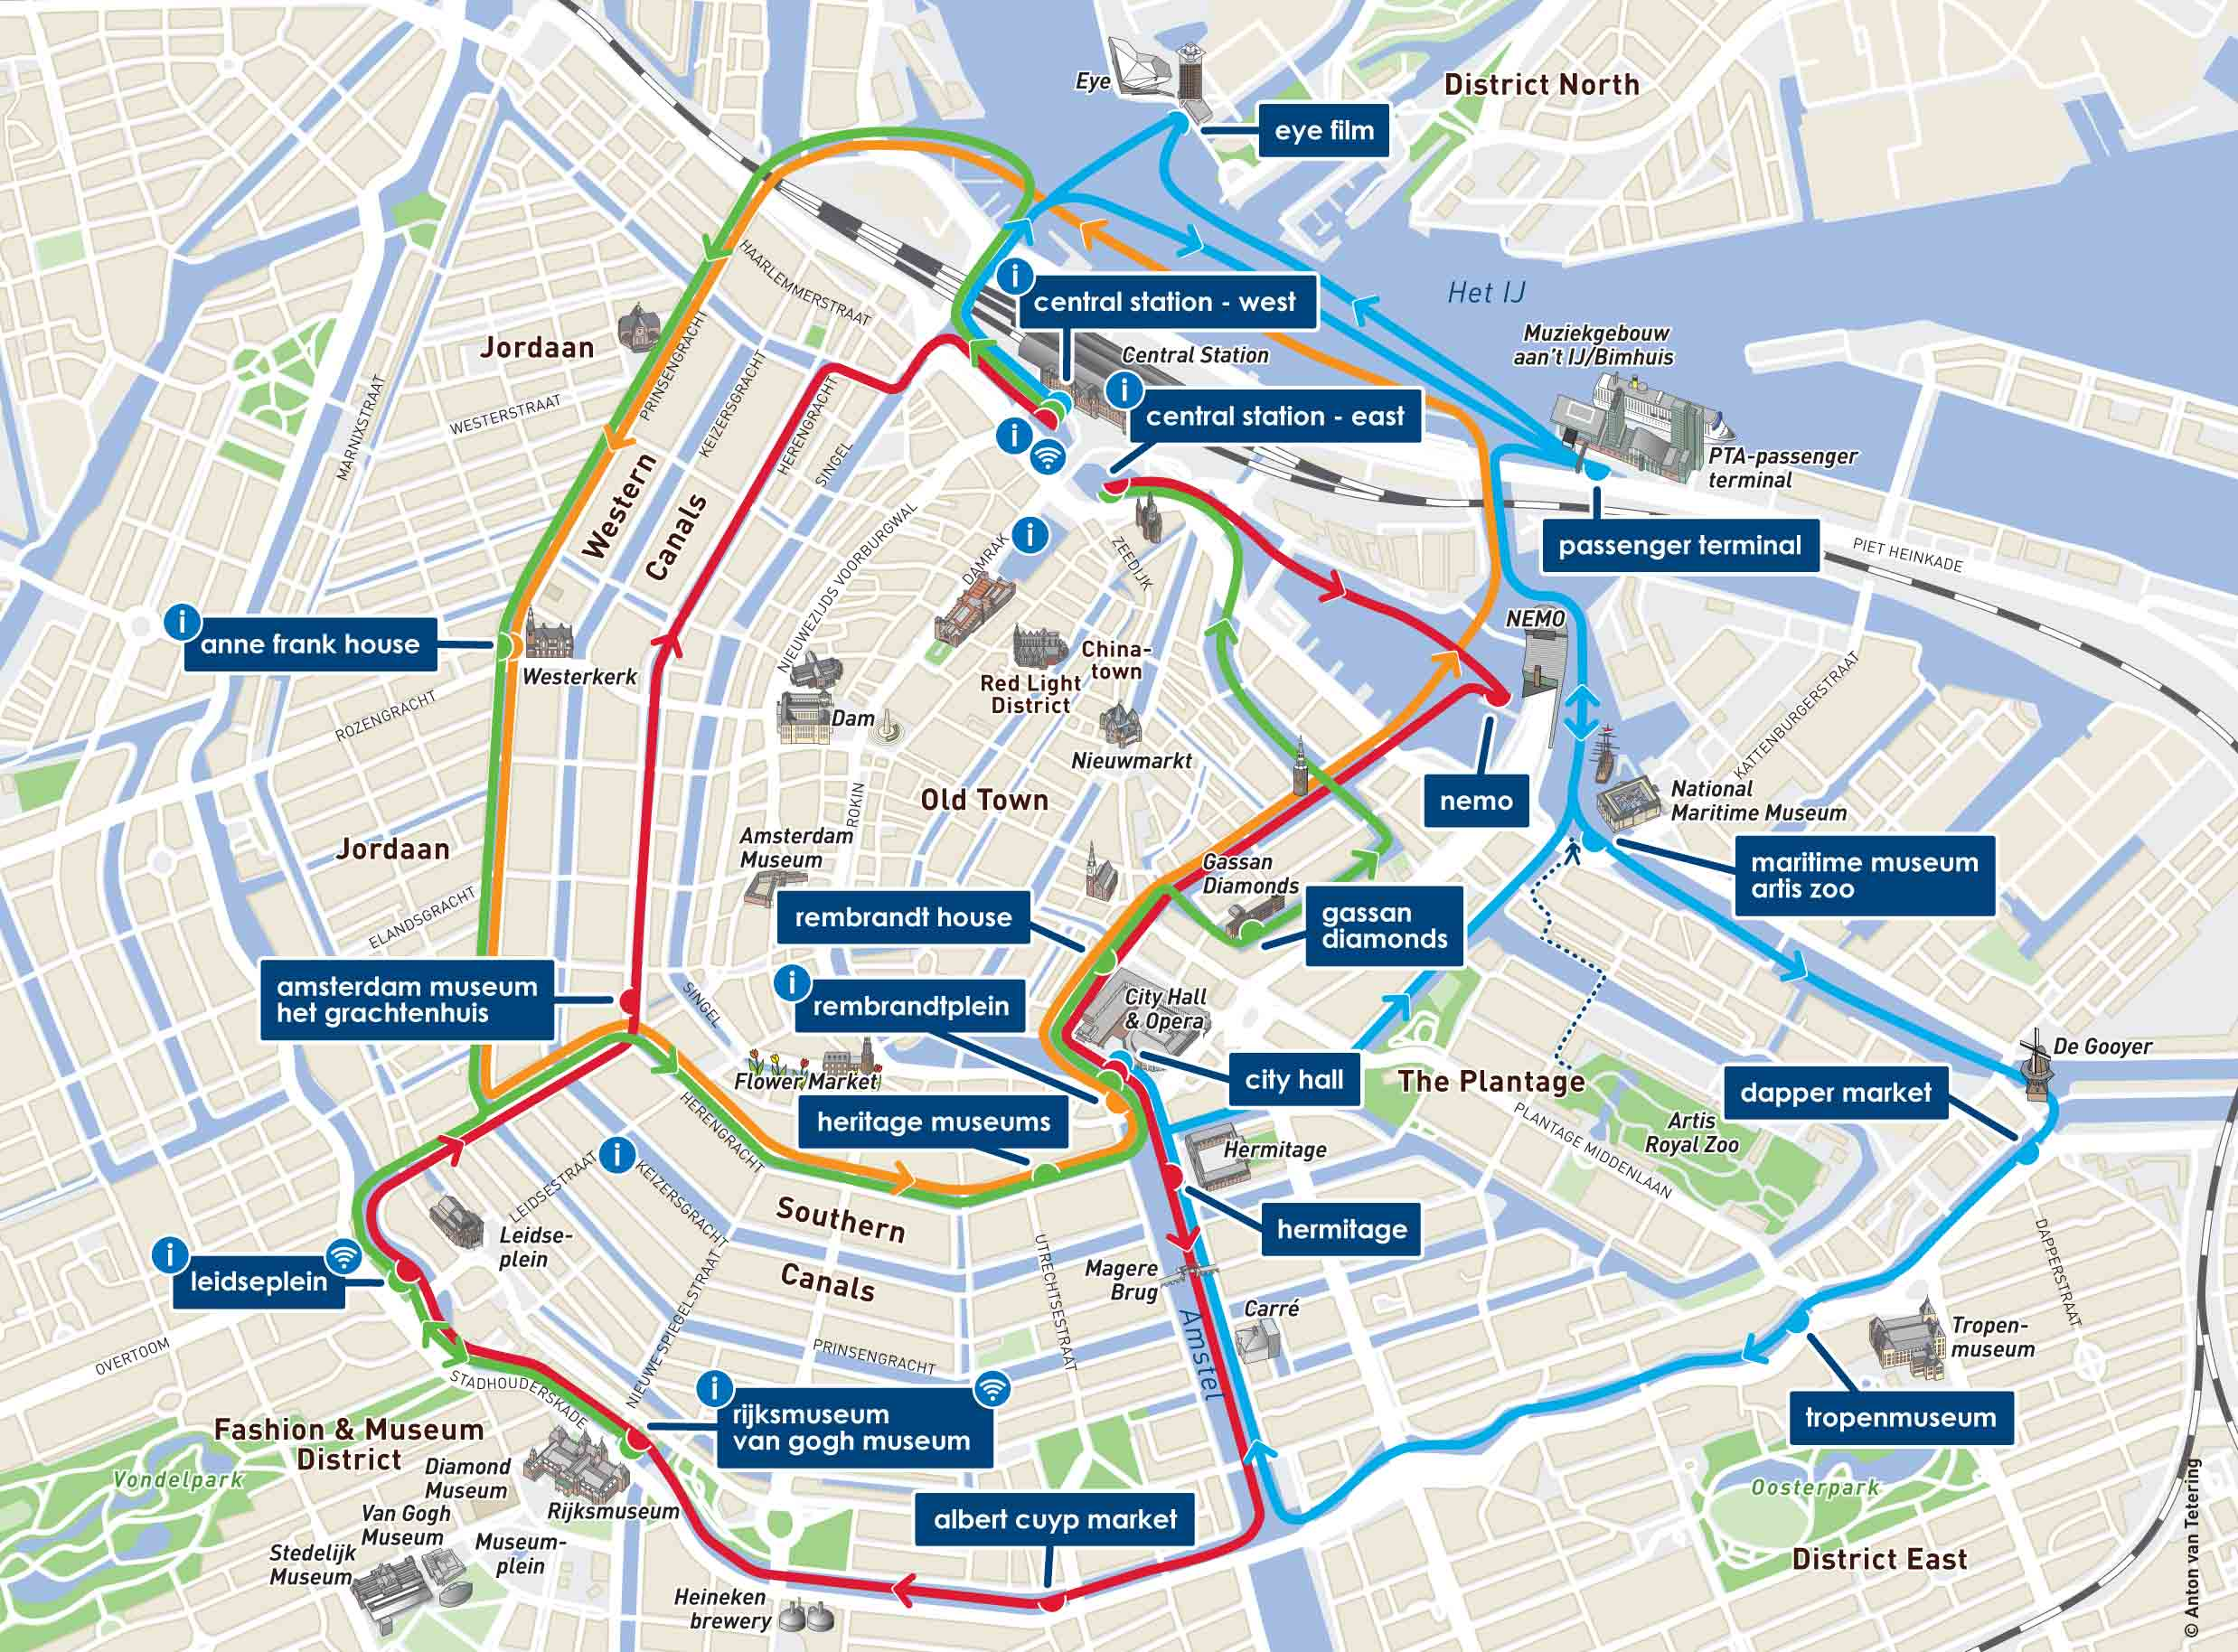 paris hop on off bus map with Hop On Hop Off Canal Bus Transport on London Top Tourist Attractions Map 06 Double Decker Bus Tour High Resolution as well Toronto Hop On Hop Off Bus Tour Map furthermore Paris Metro 10 together with Mappa salisburgo as well Paris Metro 1.